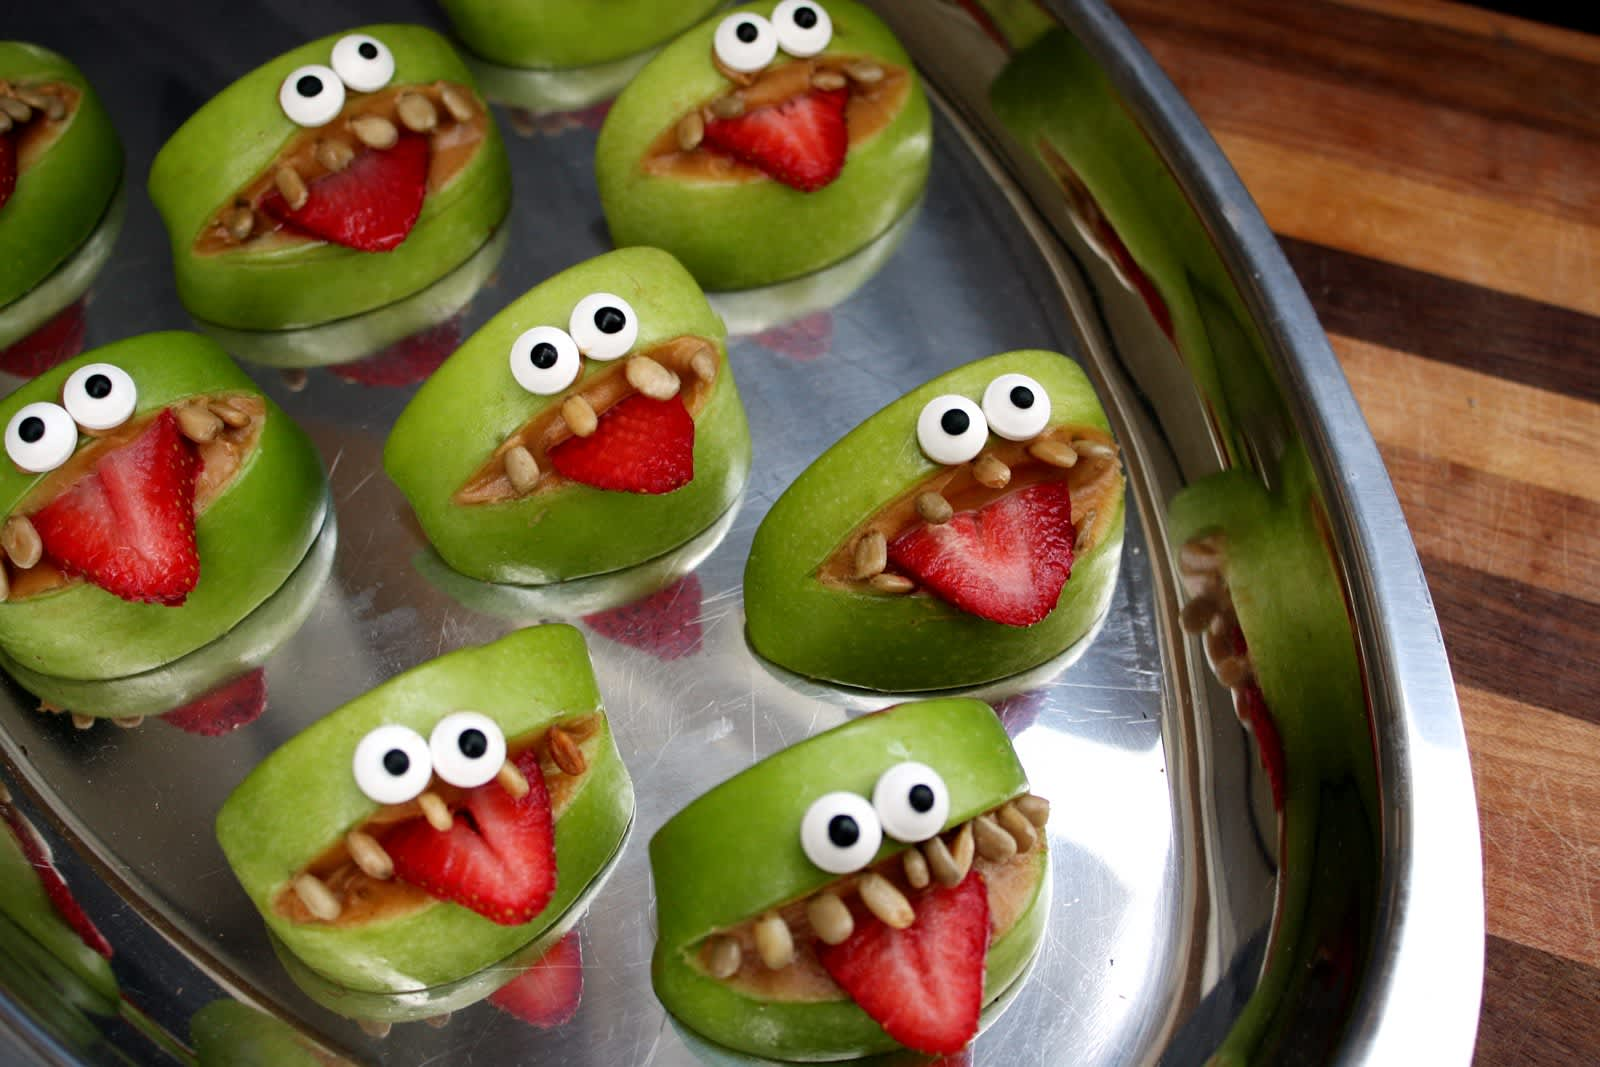 We Tried 7 Popular Halloween Recipes from Pinterest (So You Don't Have To): gallery image 4